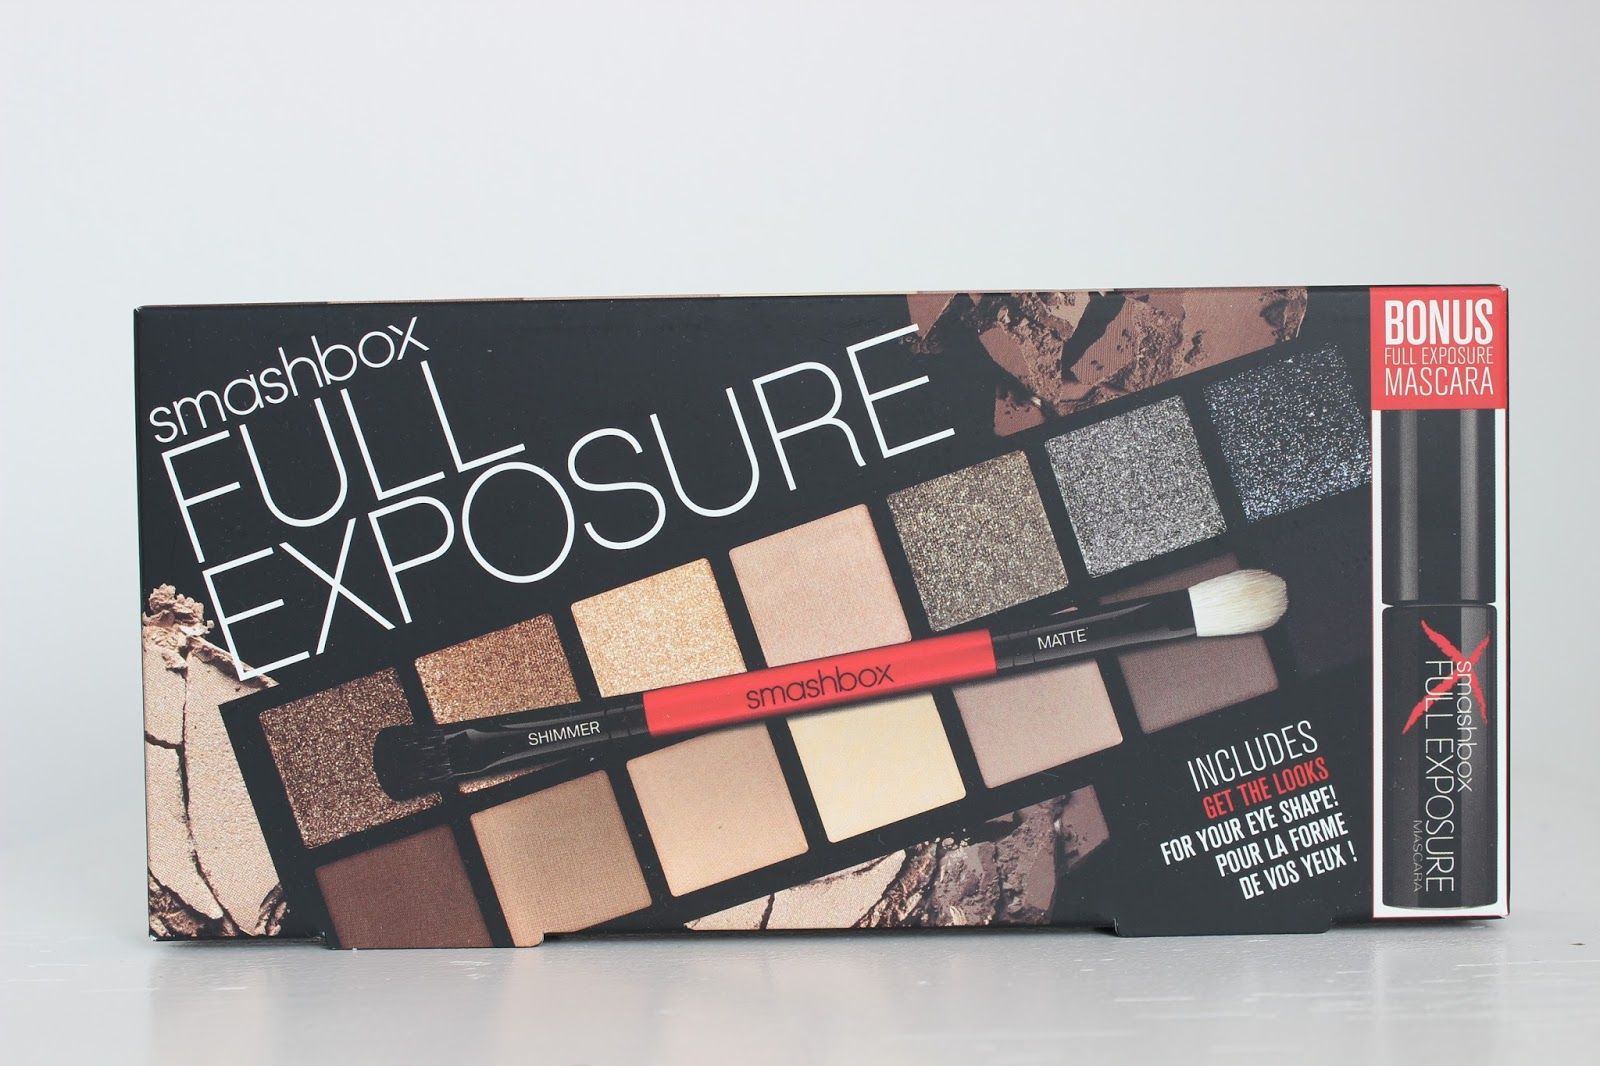 Smashbox palette uk